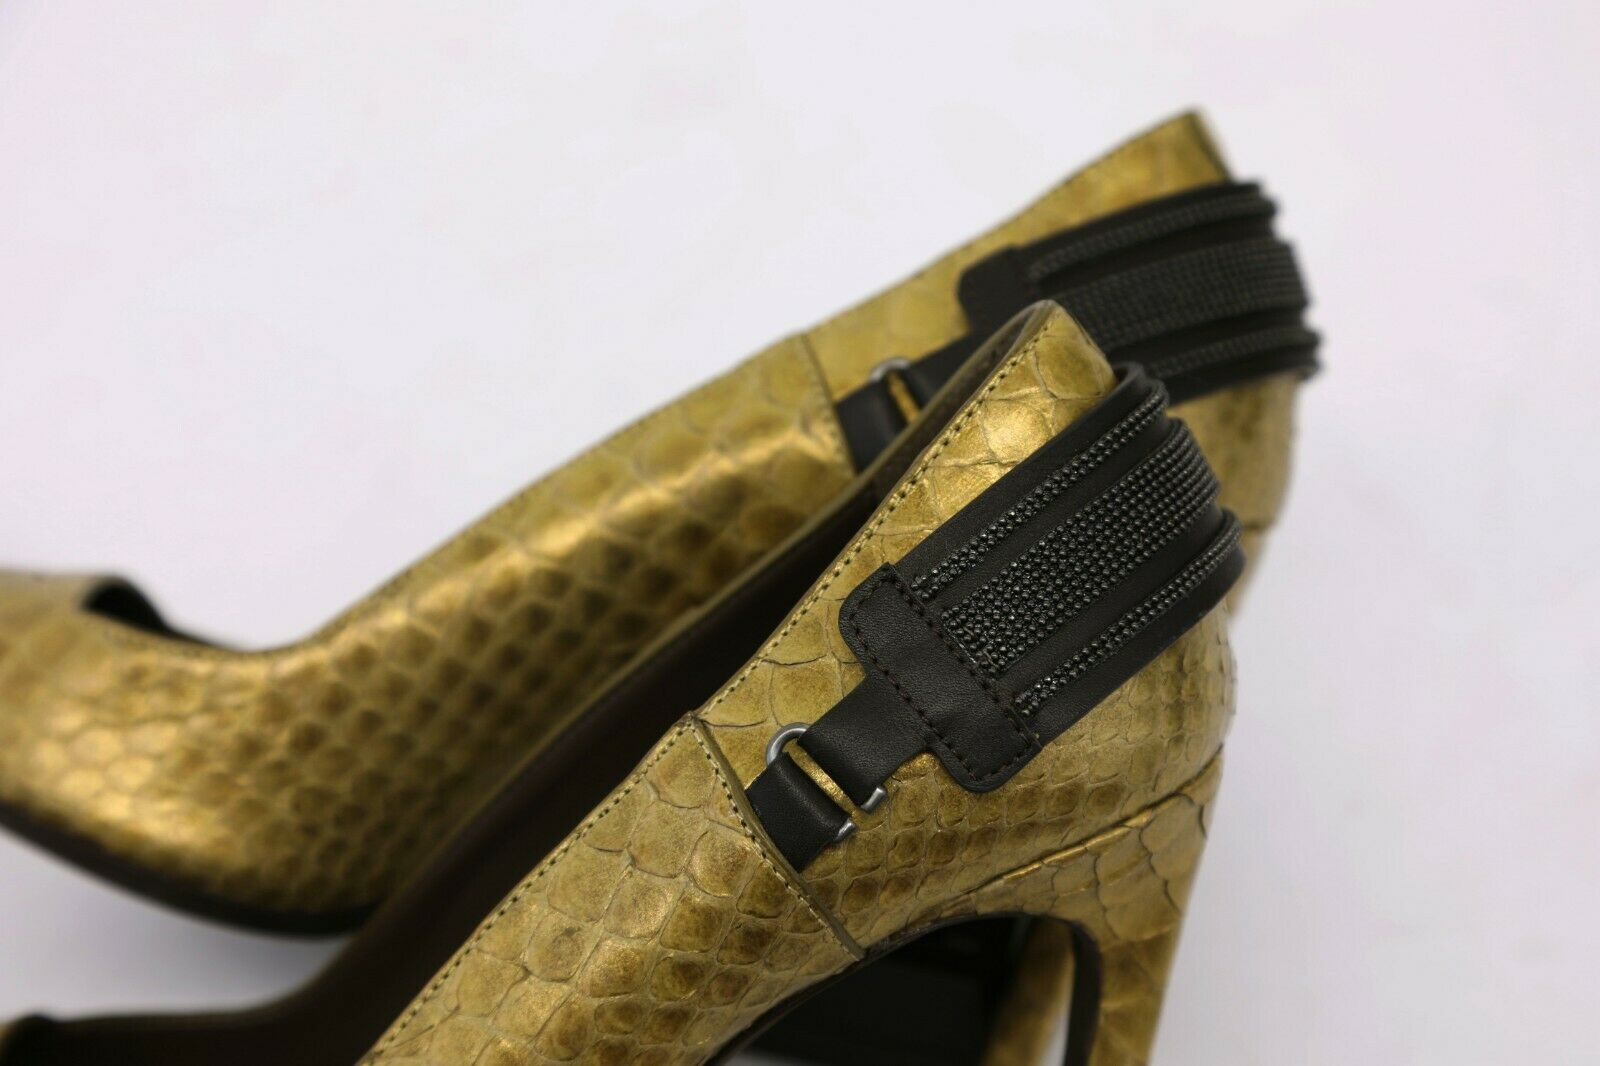 NWOB 2995 Brunello Brunello Brunello Cucinelli Metallic Python Leather Bead Strap Pump 37 7US A191 07031a